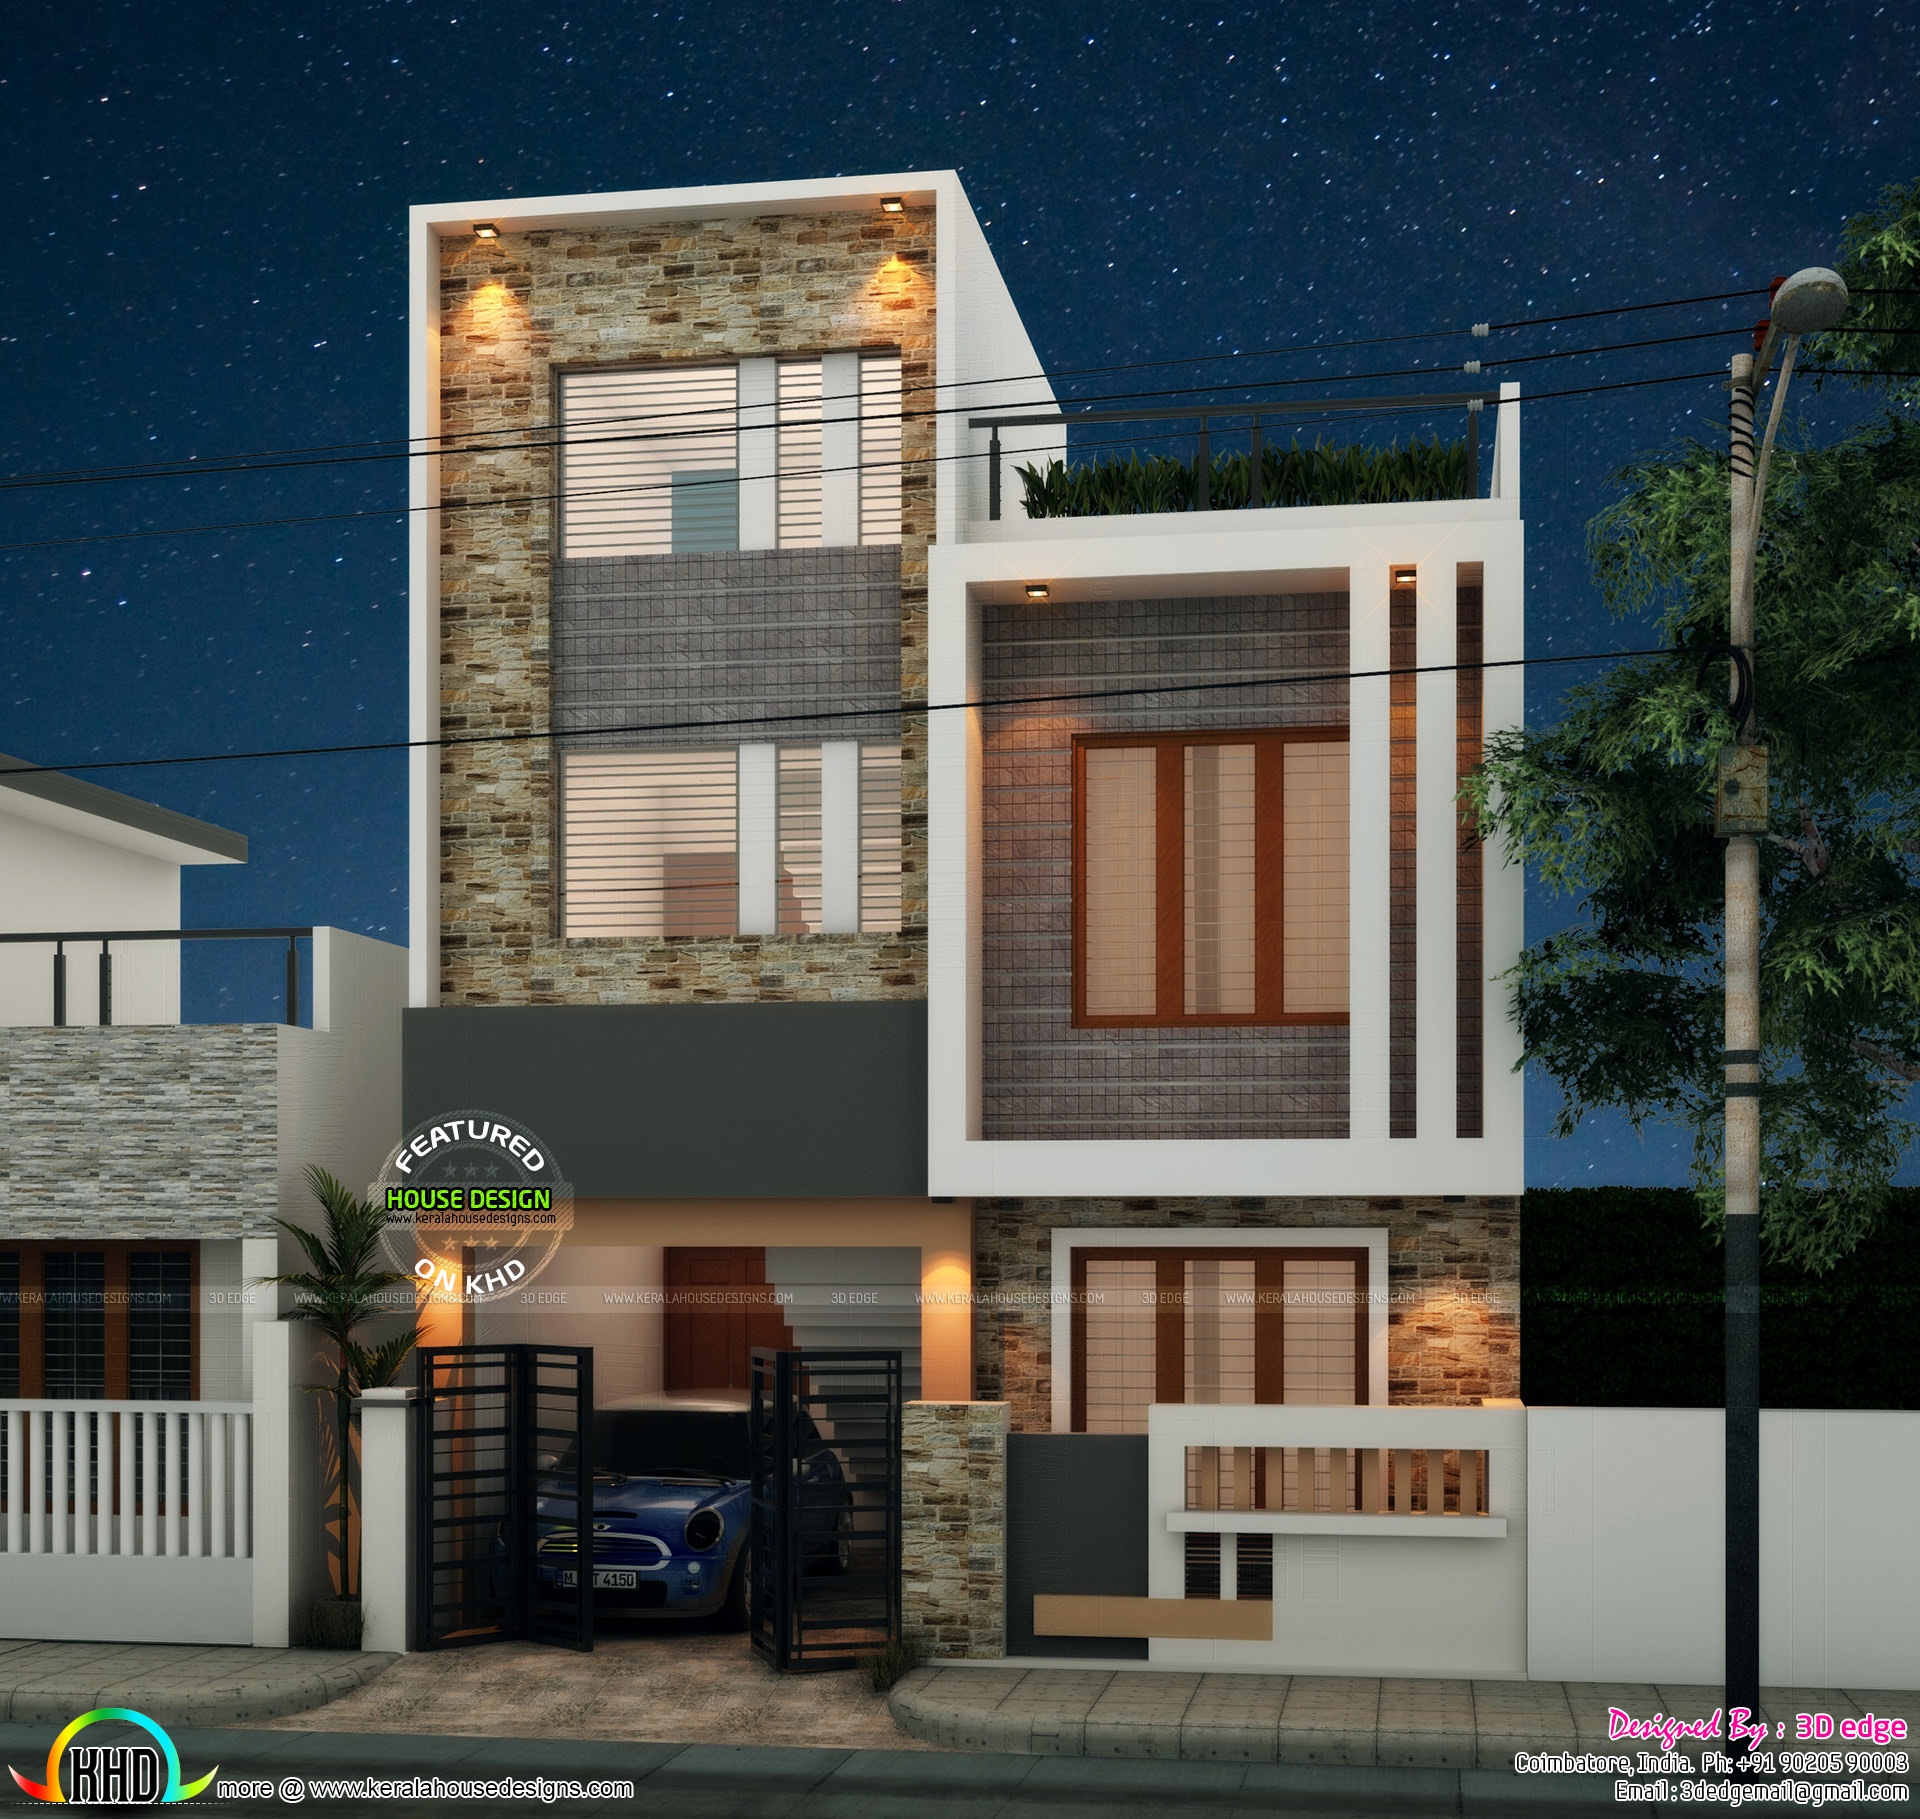 Kerala Home Design 900 Sq Feet Part - 46: Square Feet Details. Ground Floor Area : 900 Sq.ft. First Floor Area : 900  Sq.ft. Total Area : 1800 Sq.ft. Bedrooms : 4. Design Style : Modern Flat  Roof